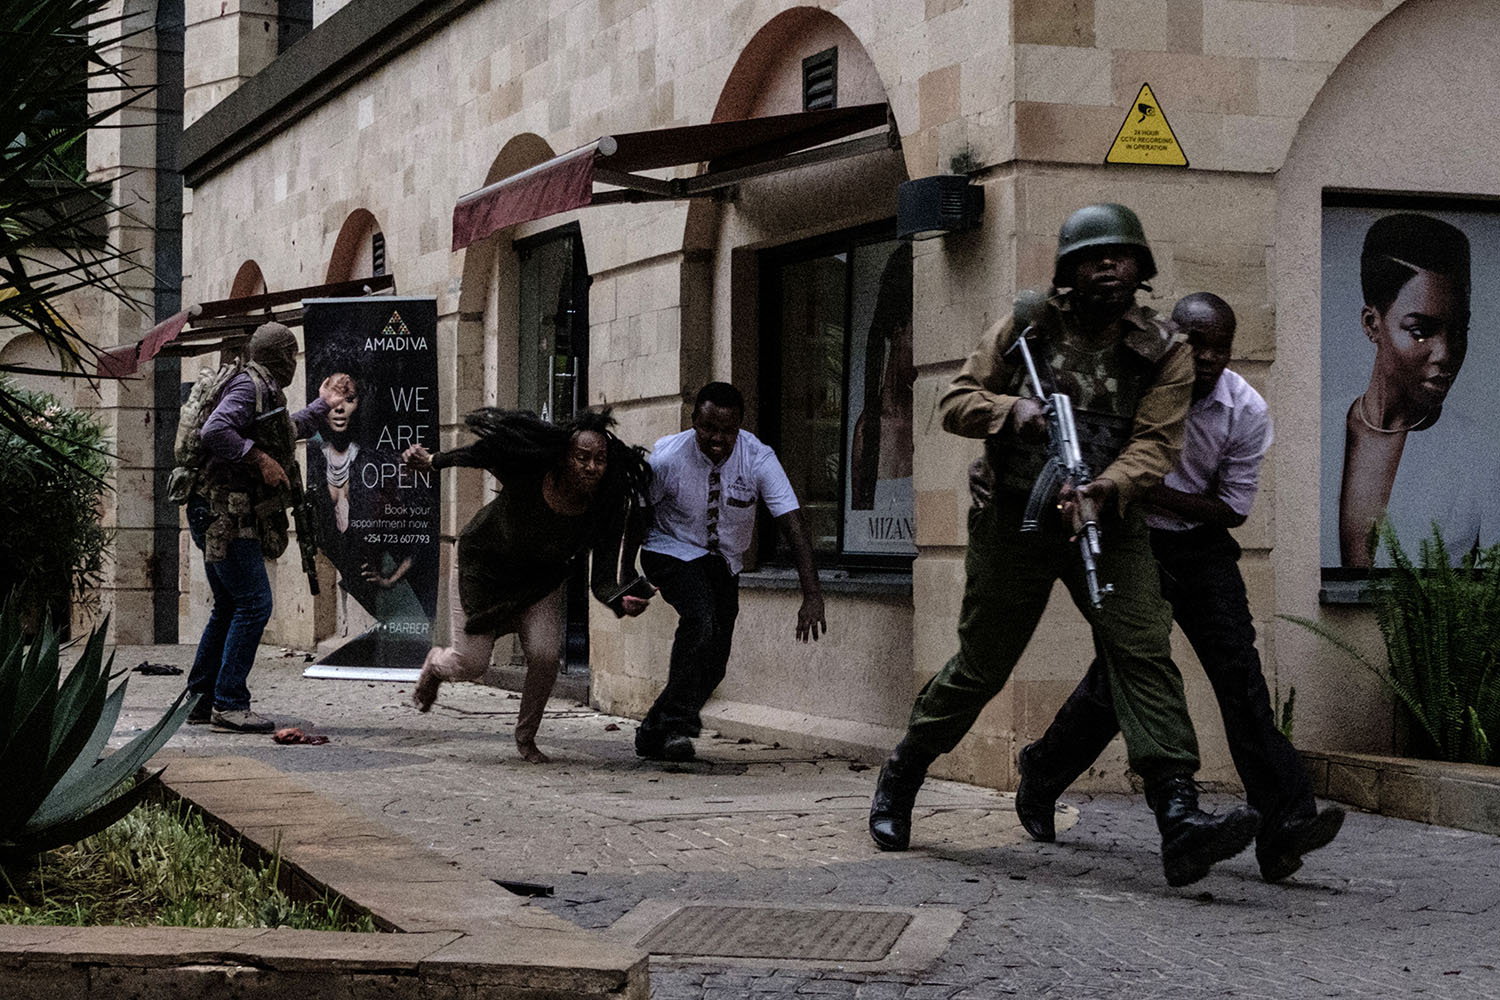 Kenyan security forces help people escape after a bomb blast at DusitD2 hotel in Nairobi on Jan. 15. A huge blast followed by a gun battle rocked the upmarfket hotel and office complex, killing at least 21 in an attack claimed by the al-Qaeda-linked al-Shabaab Islamist group. KABIR DHANJI/AFP/Getty Images